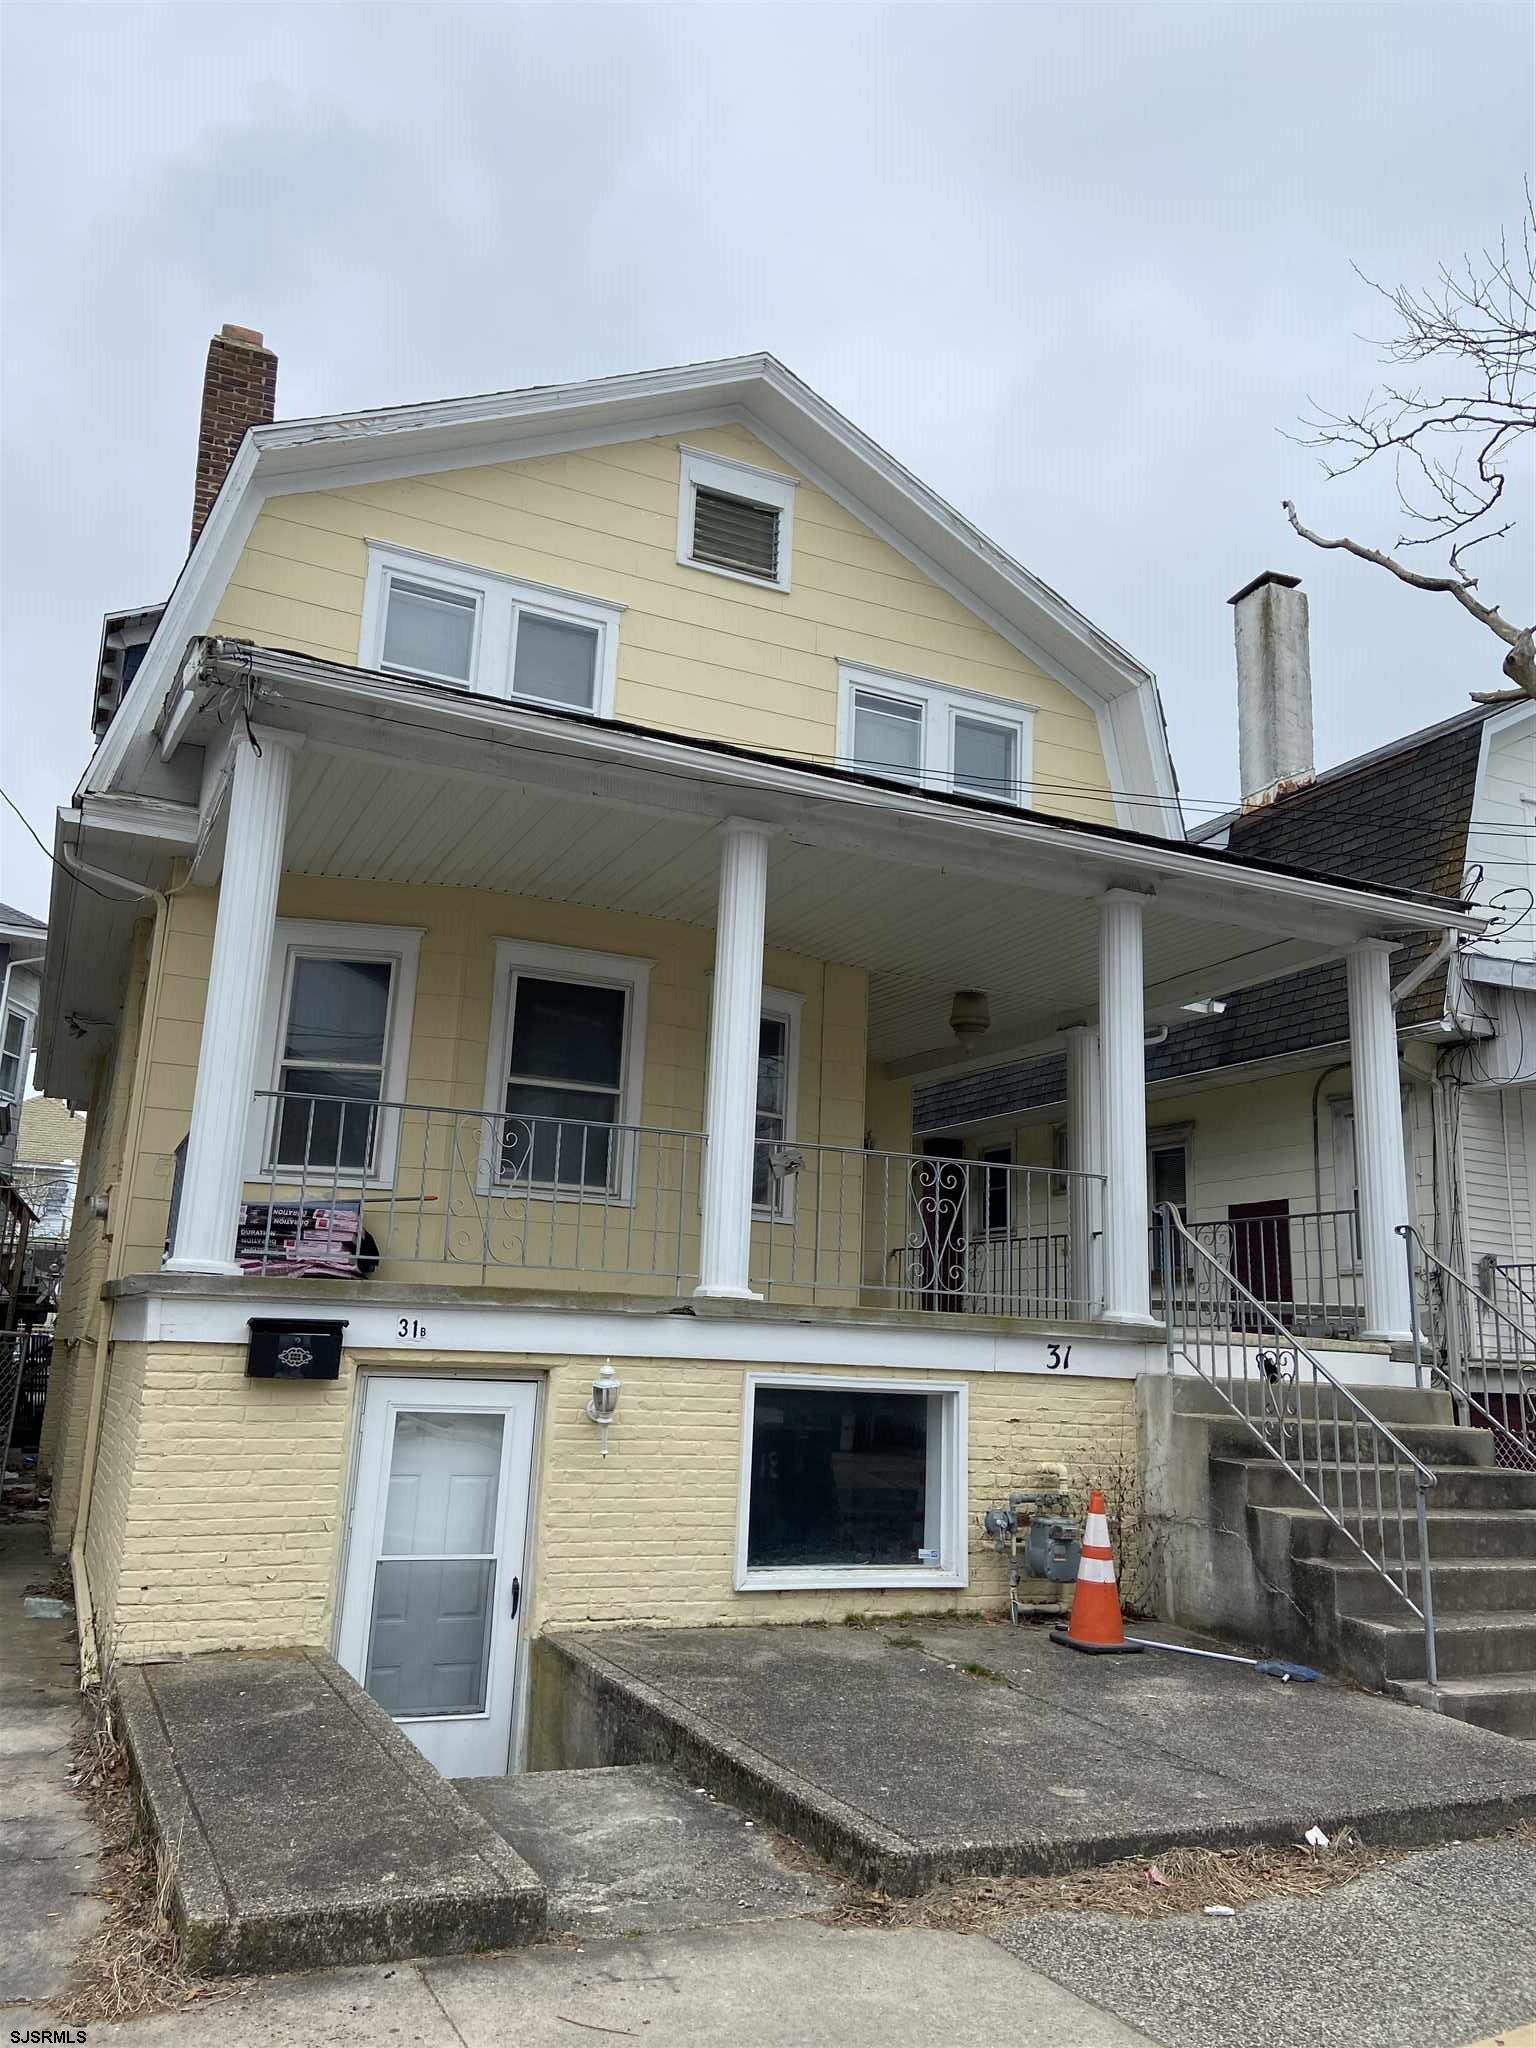 1st floor/ground floor Is 2BD 1BA, $1250.00 a month, this includes gas heat and hot water. Tenant pays electric, phone and cable. Pets upon discretion. 1.5 month security. Non smokers only. No off street parking. Close to public transportation and the boardwalk. All applicants mus go to our website www.balsleylosco.com click the 3 grey bars to the right, rentals then rental app. All applicants 18 or older must fill this out. It is $50.00 pp. once your client has done this I need you to send me their legal names and DOB. This is how I get the report back. No exceptions.